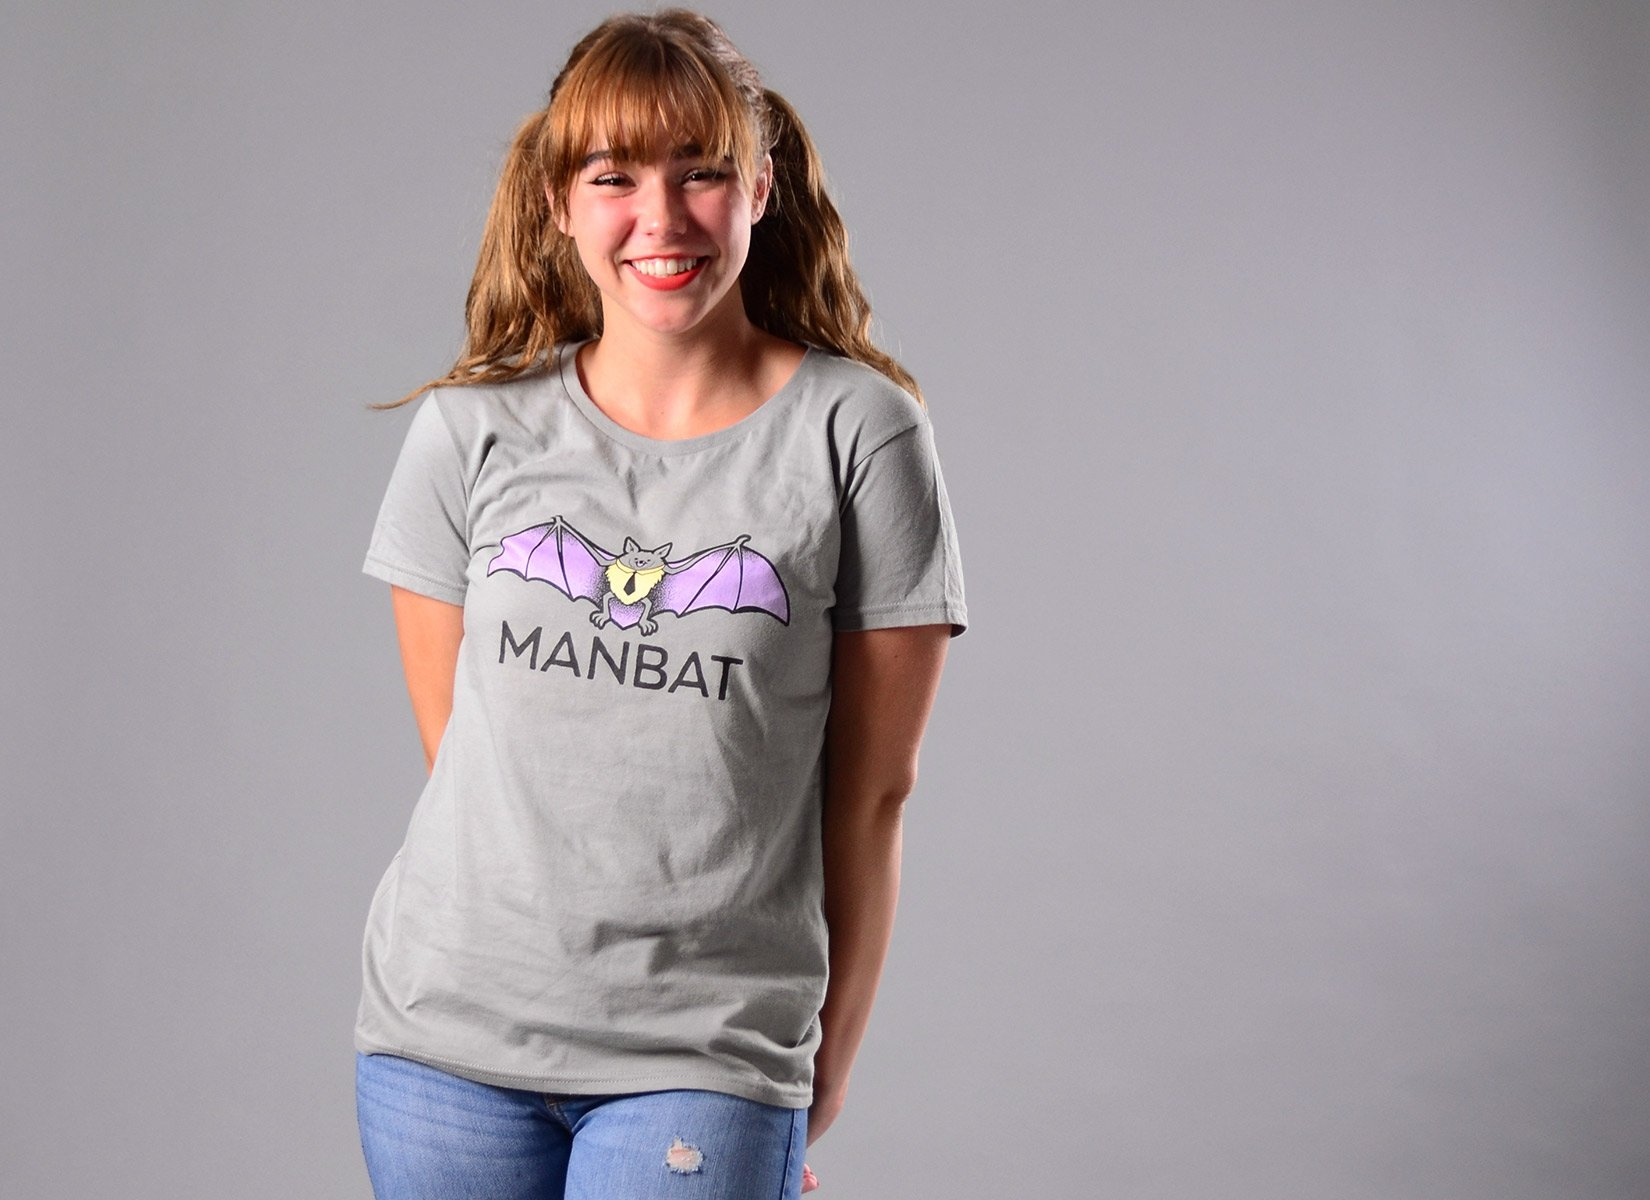 Manbat on Womens T-Shirt